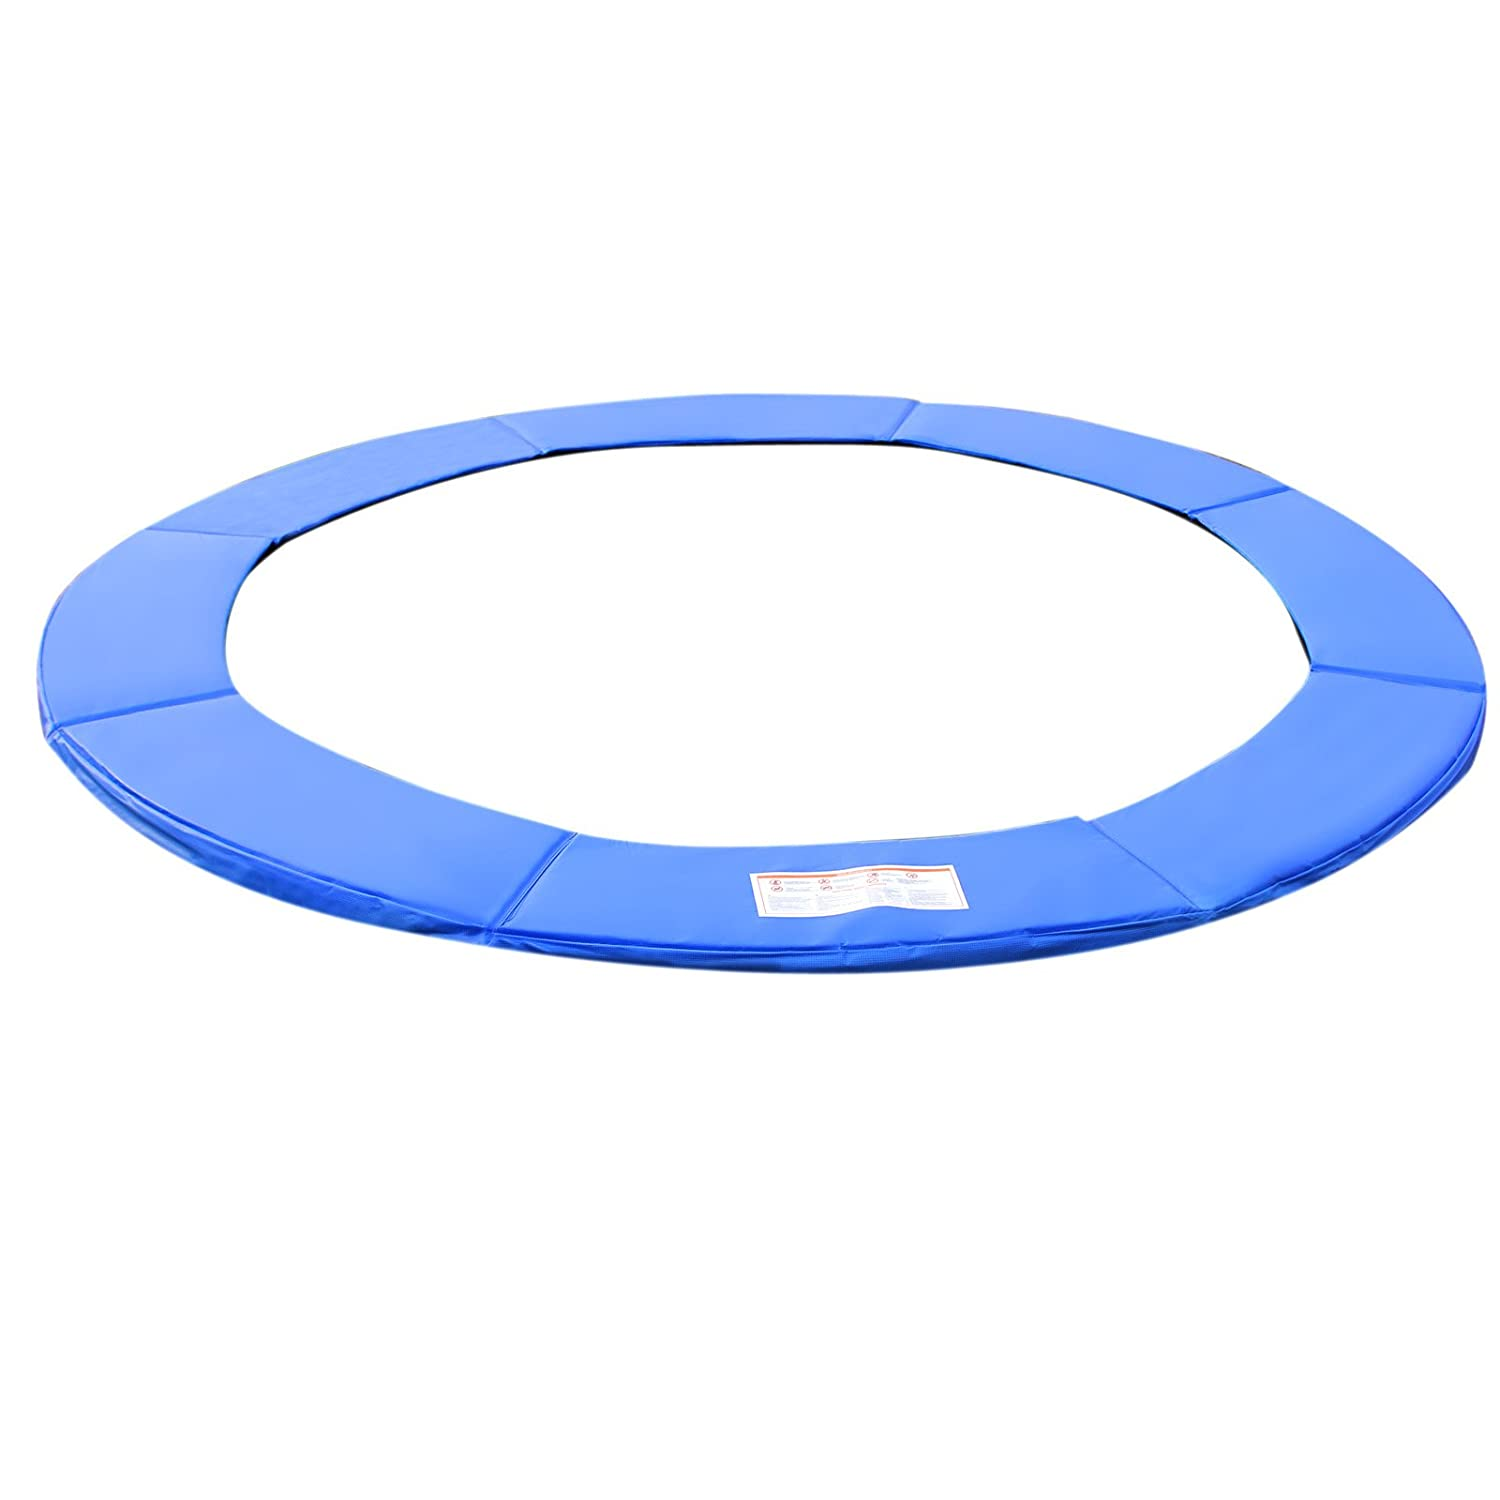 Accessoires trampoline - Coussin protection trampoline 244 ...